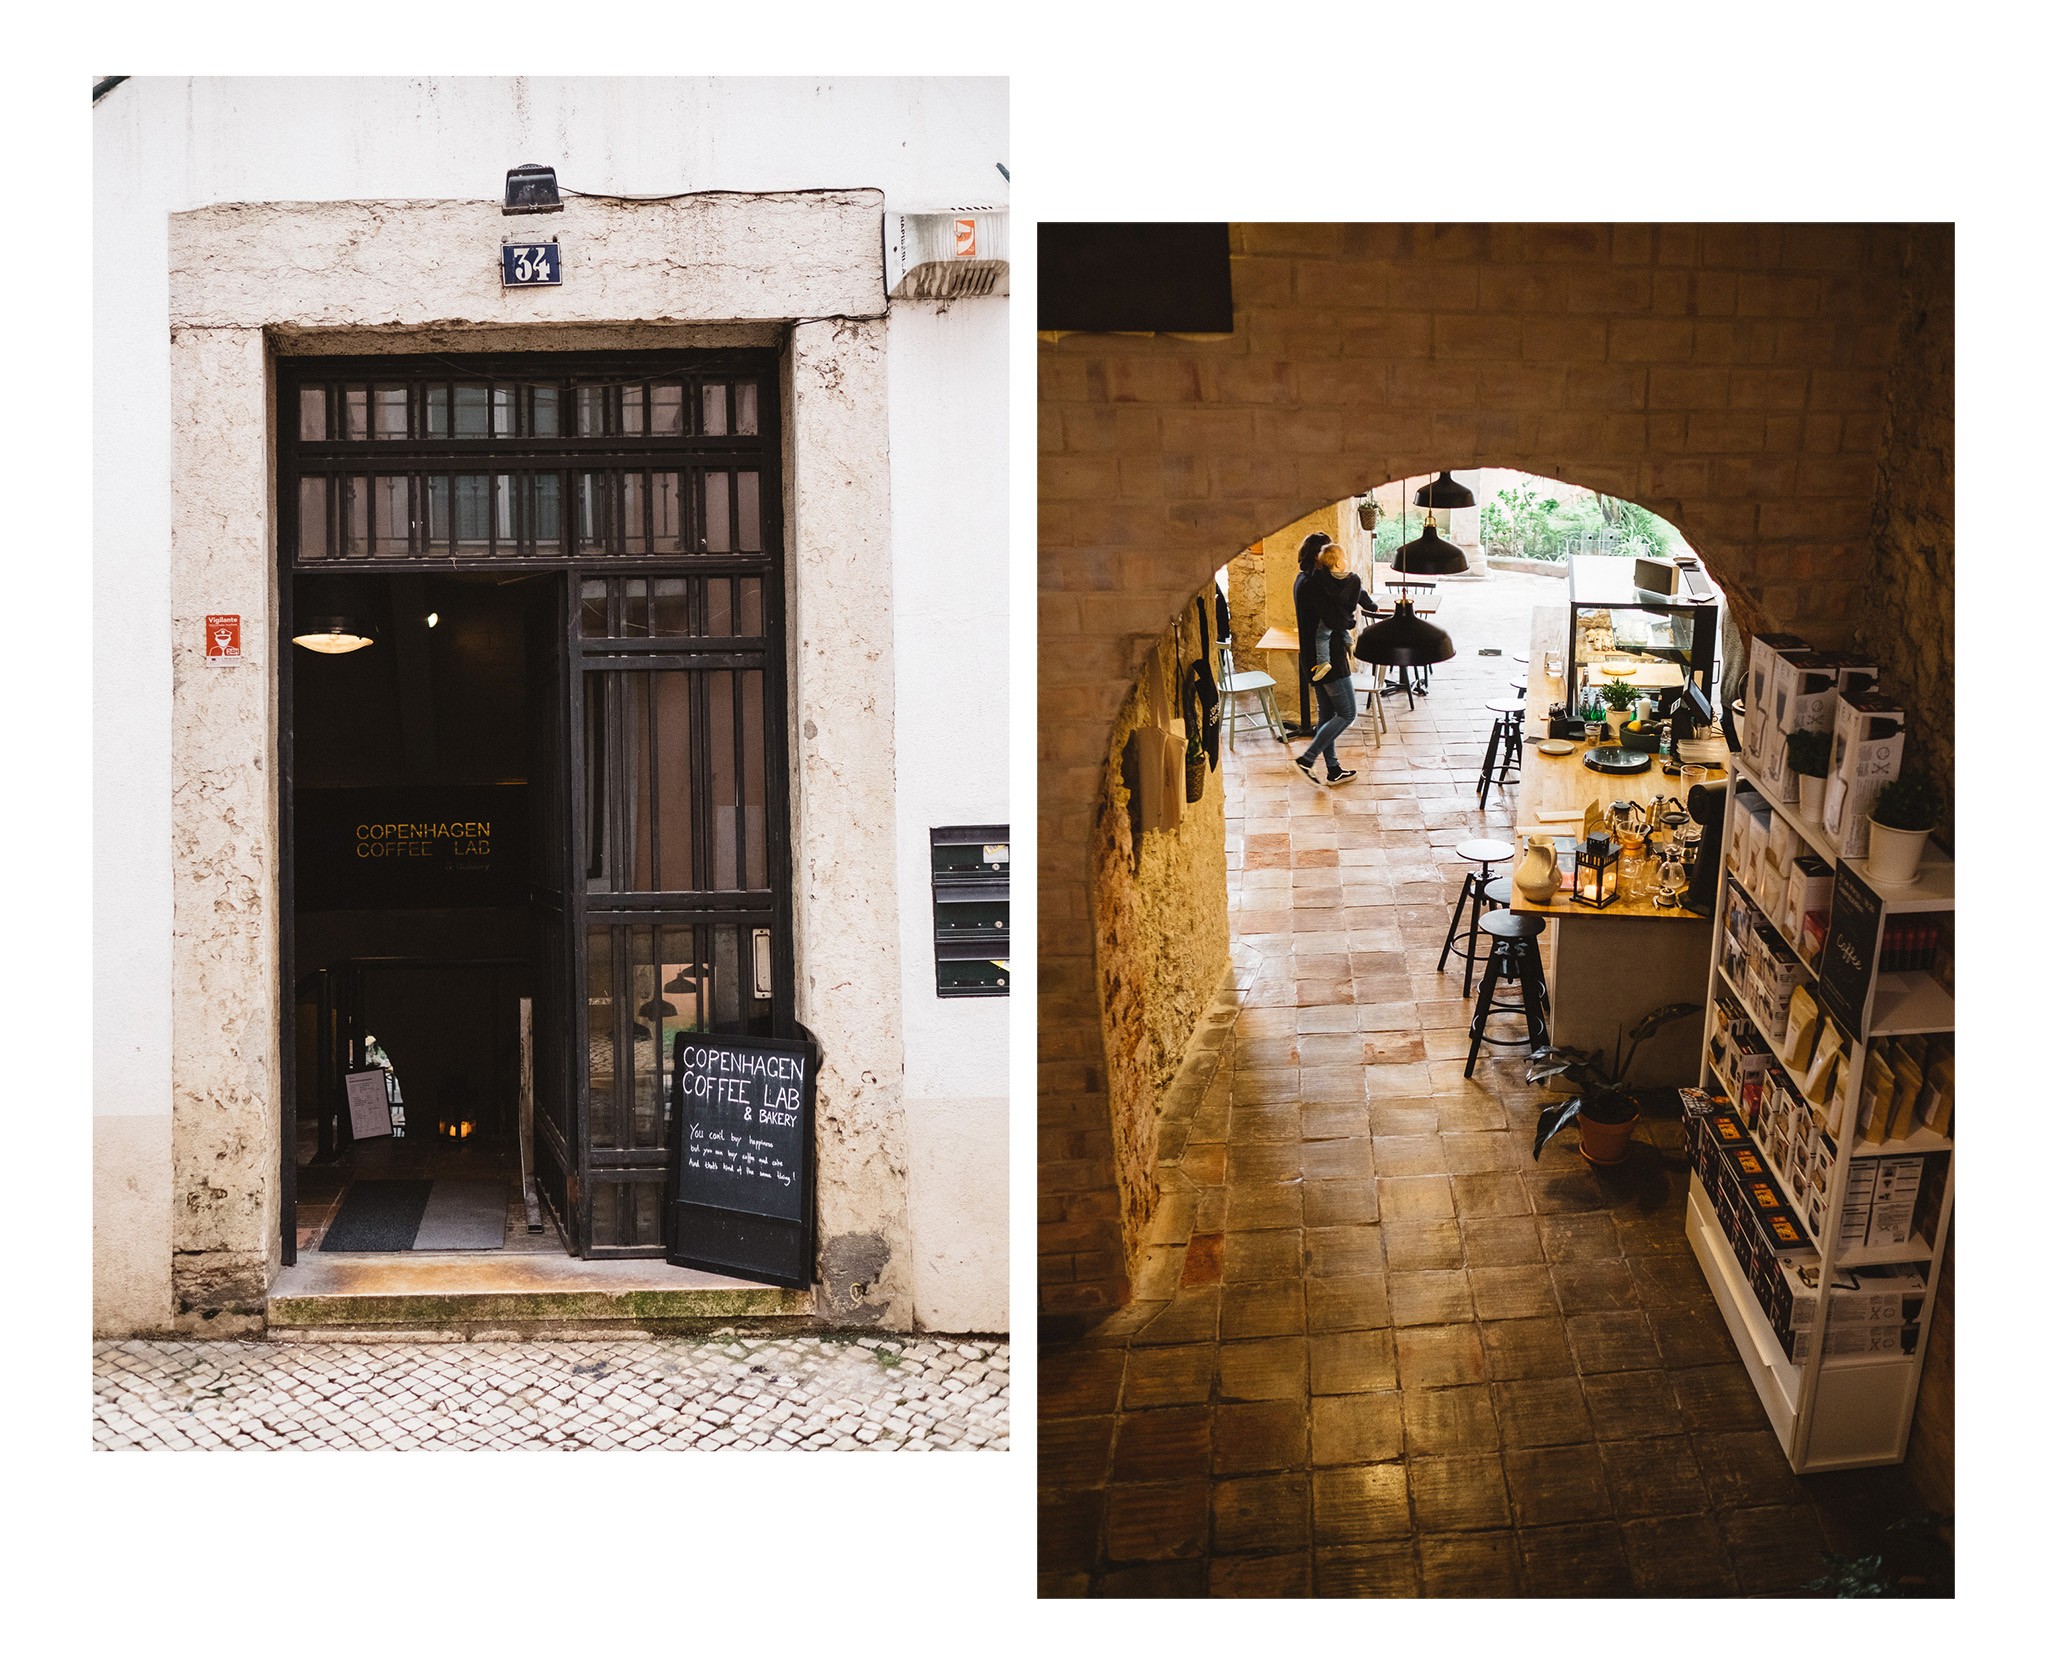 The Copenhagen Coffee Lab, a great coffee place in the Alfama district of Lisbon